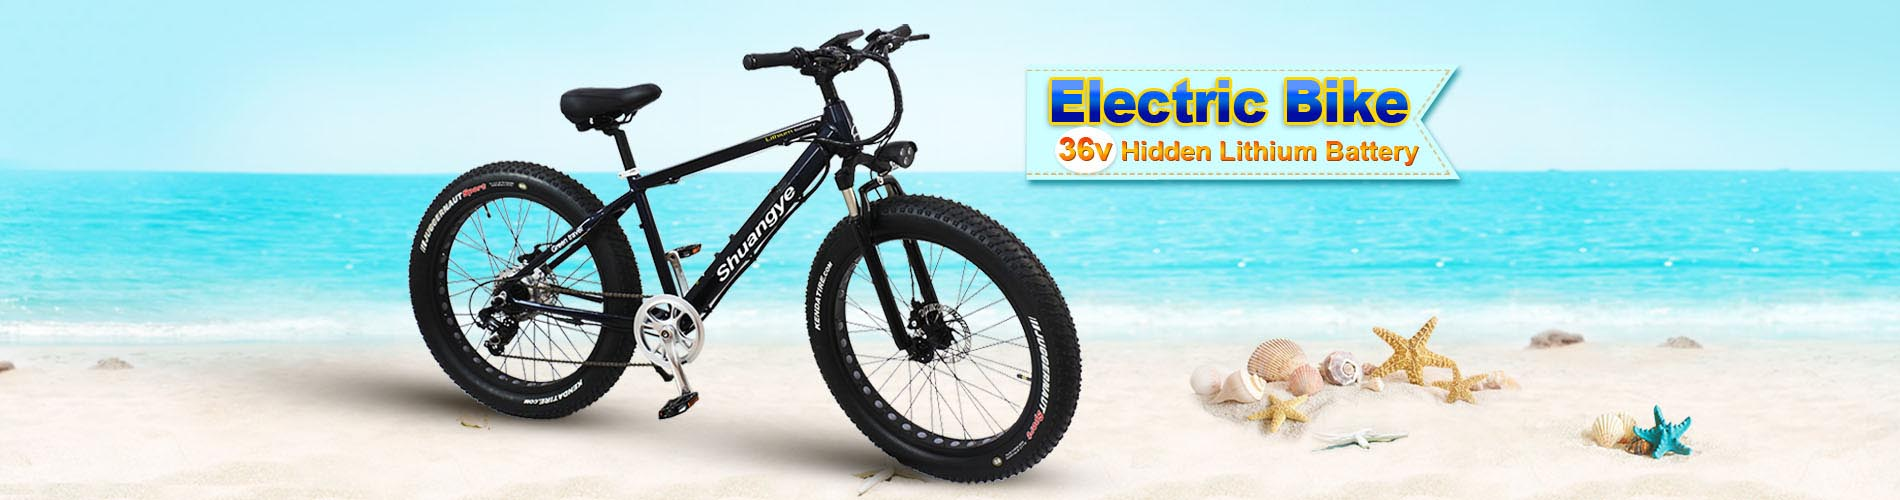 buy electric bike bar ends